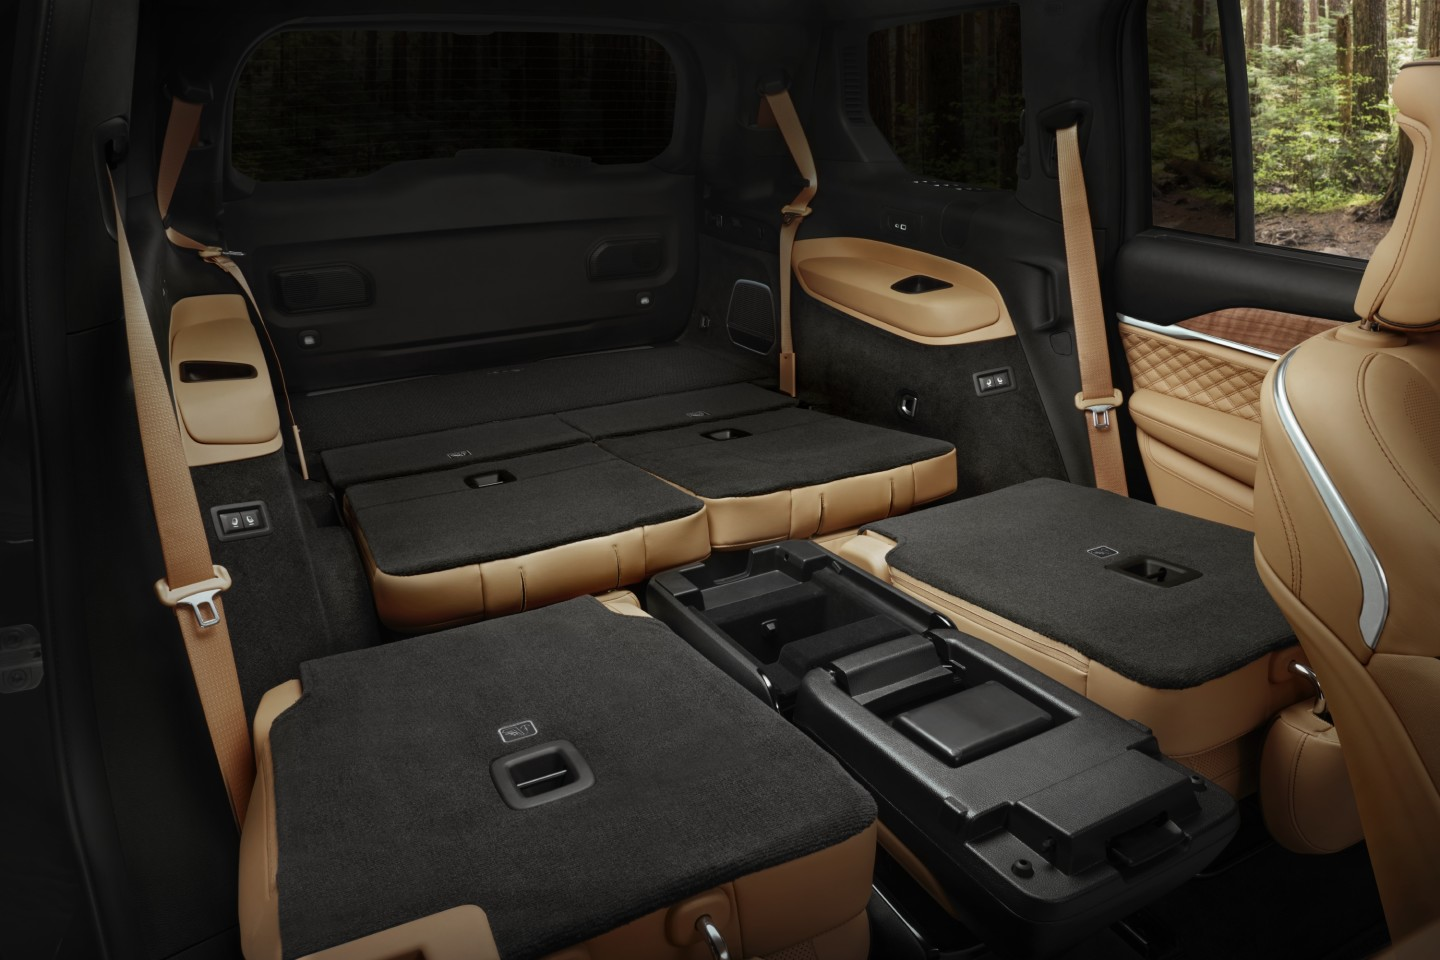 All rear seats fold into a flat load floor for a total of 84.6 cu ft of cargo space